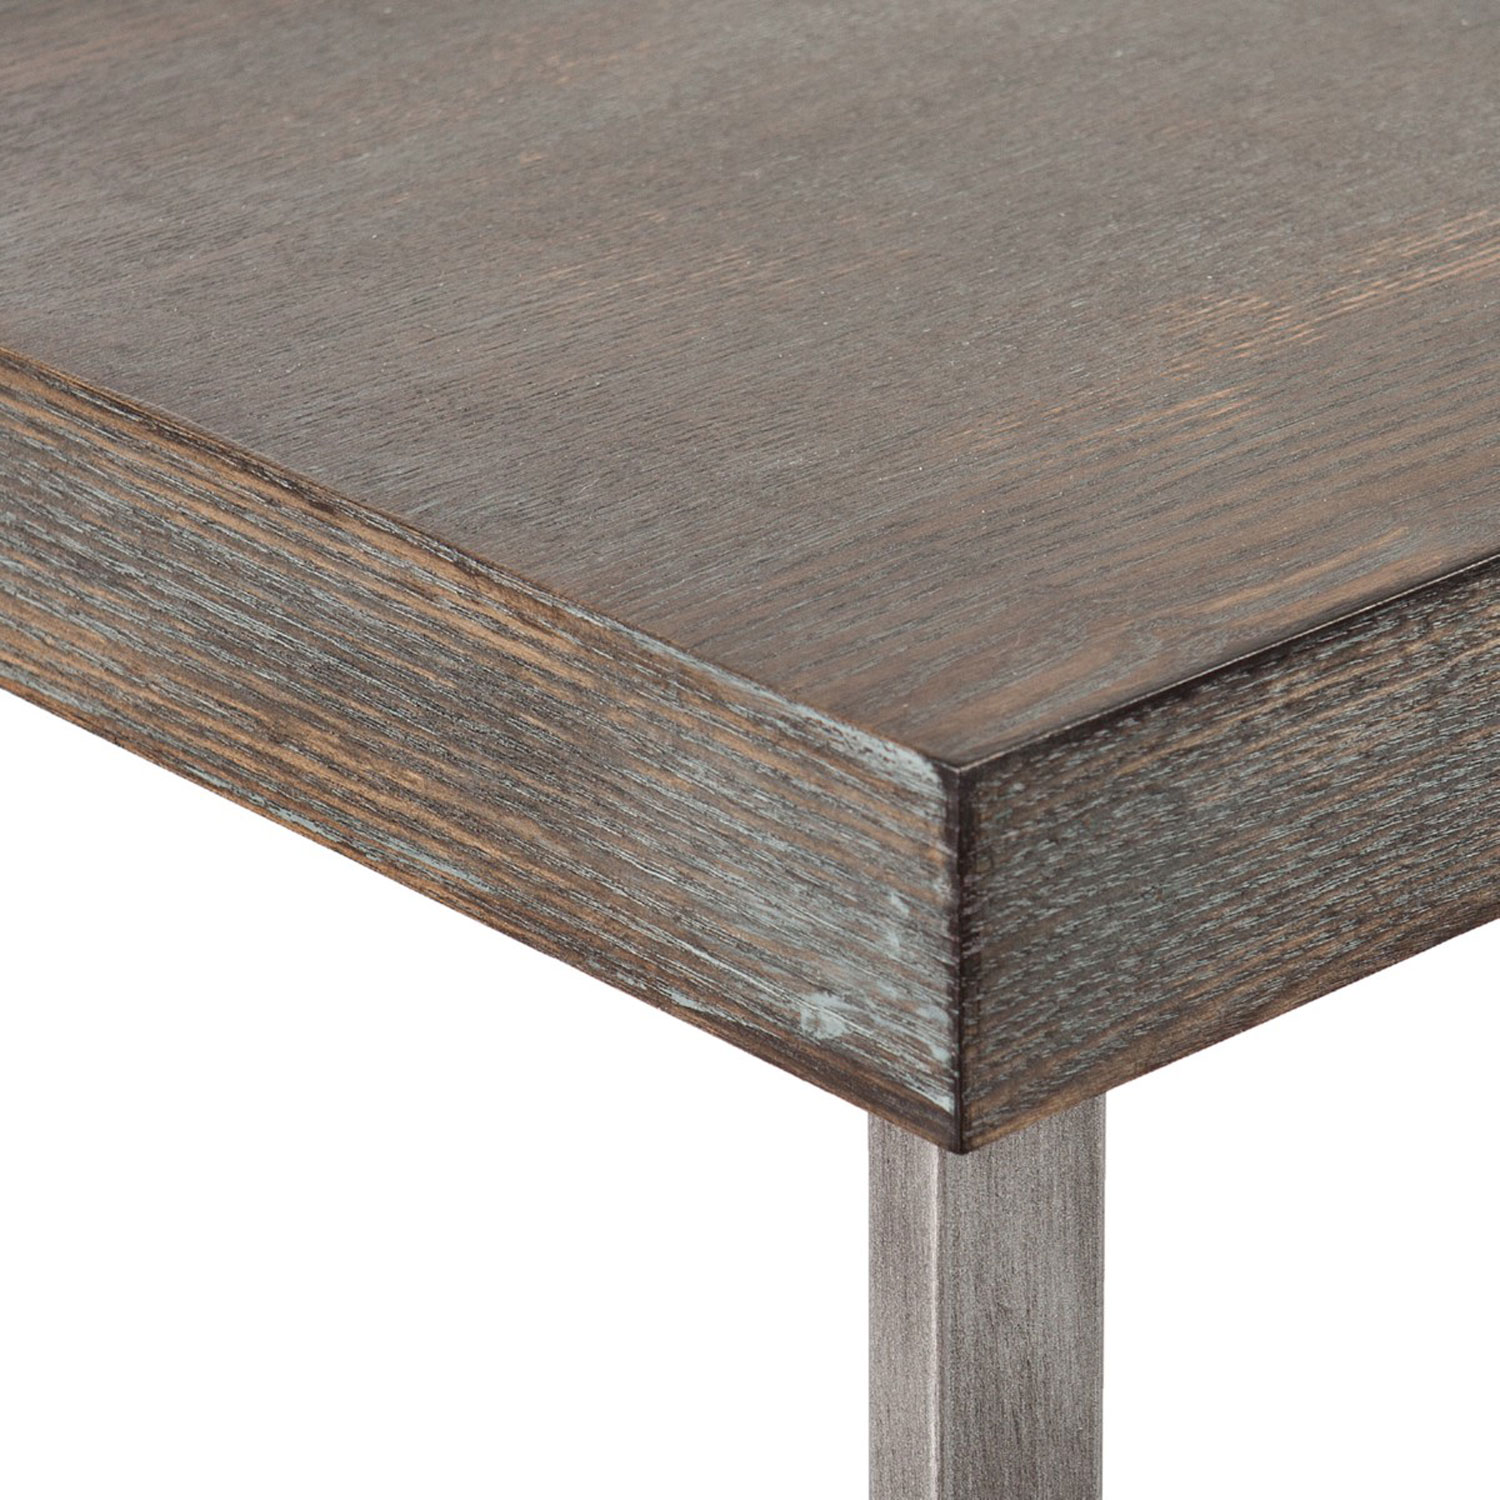 southern enterprises nolan weathered burnt oak pedestal accent table hover zoom antique square coffee solid furniture half moon console pier one small bathroom mid century modern